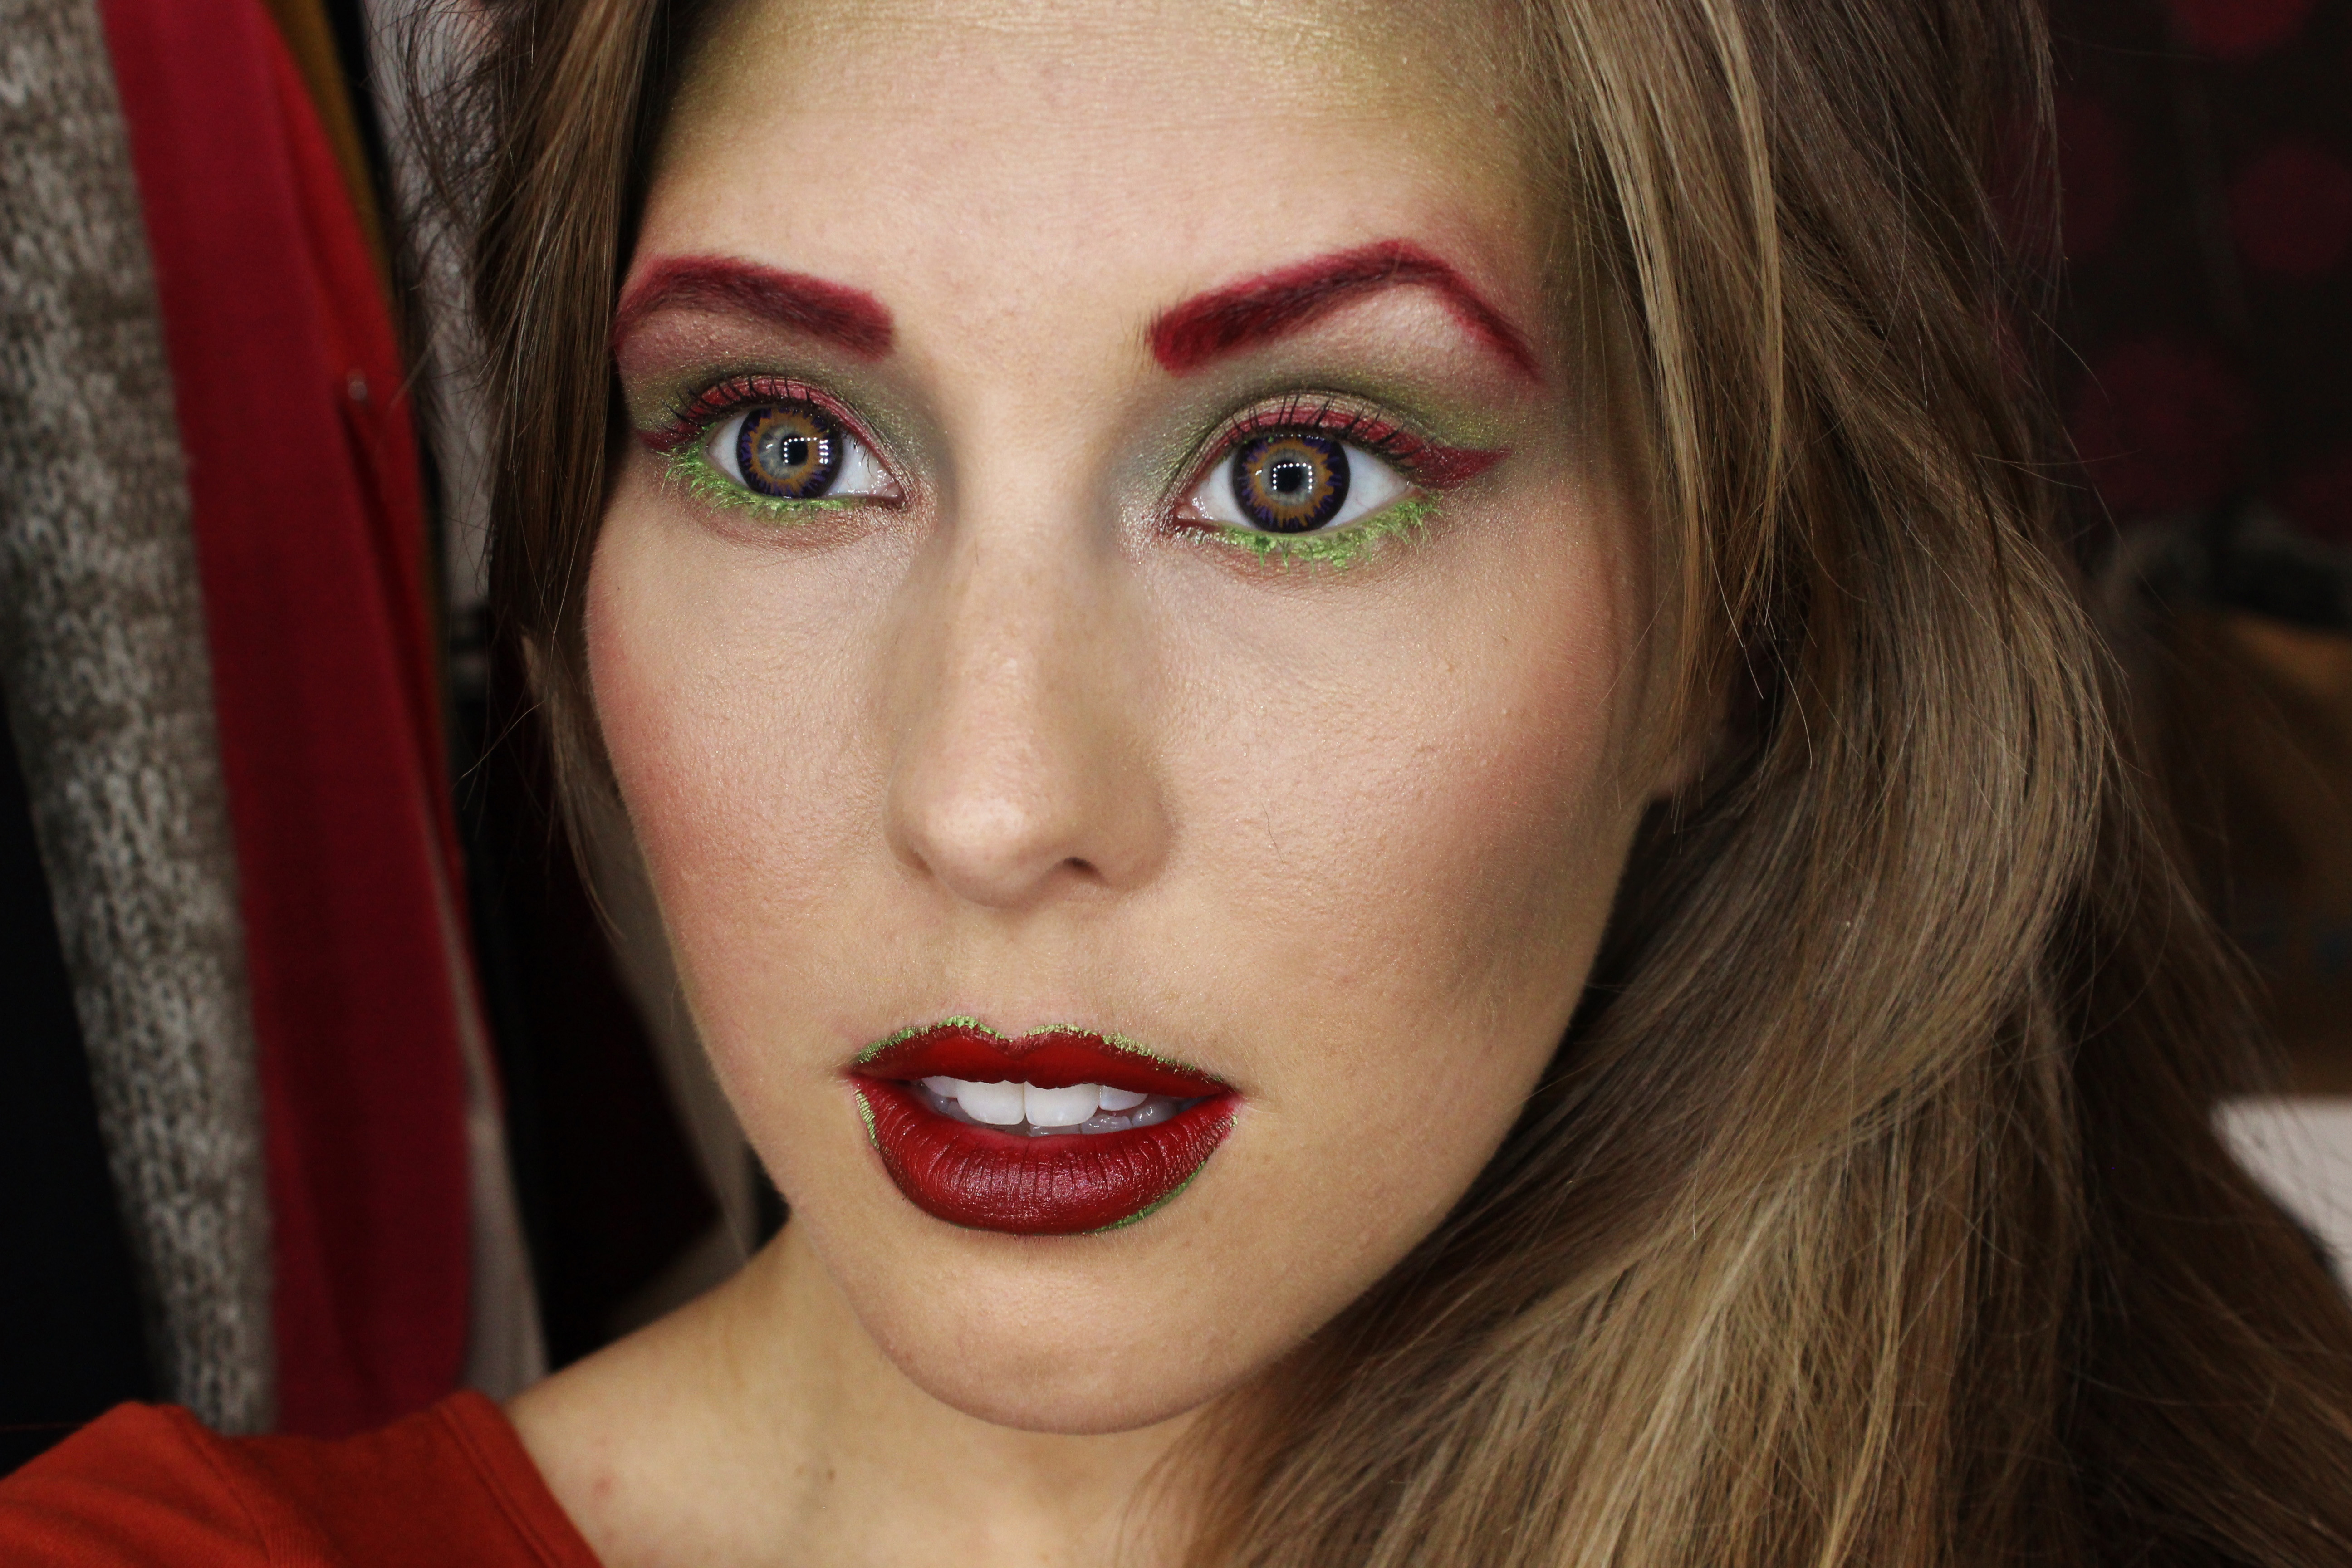 Poison ivy makeup, poison ivy makeup tutorial